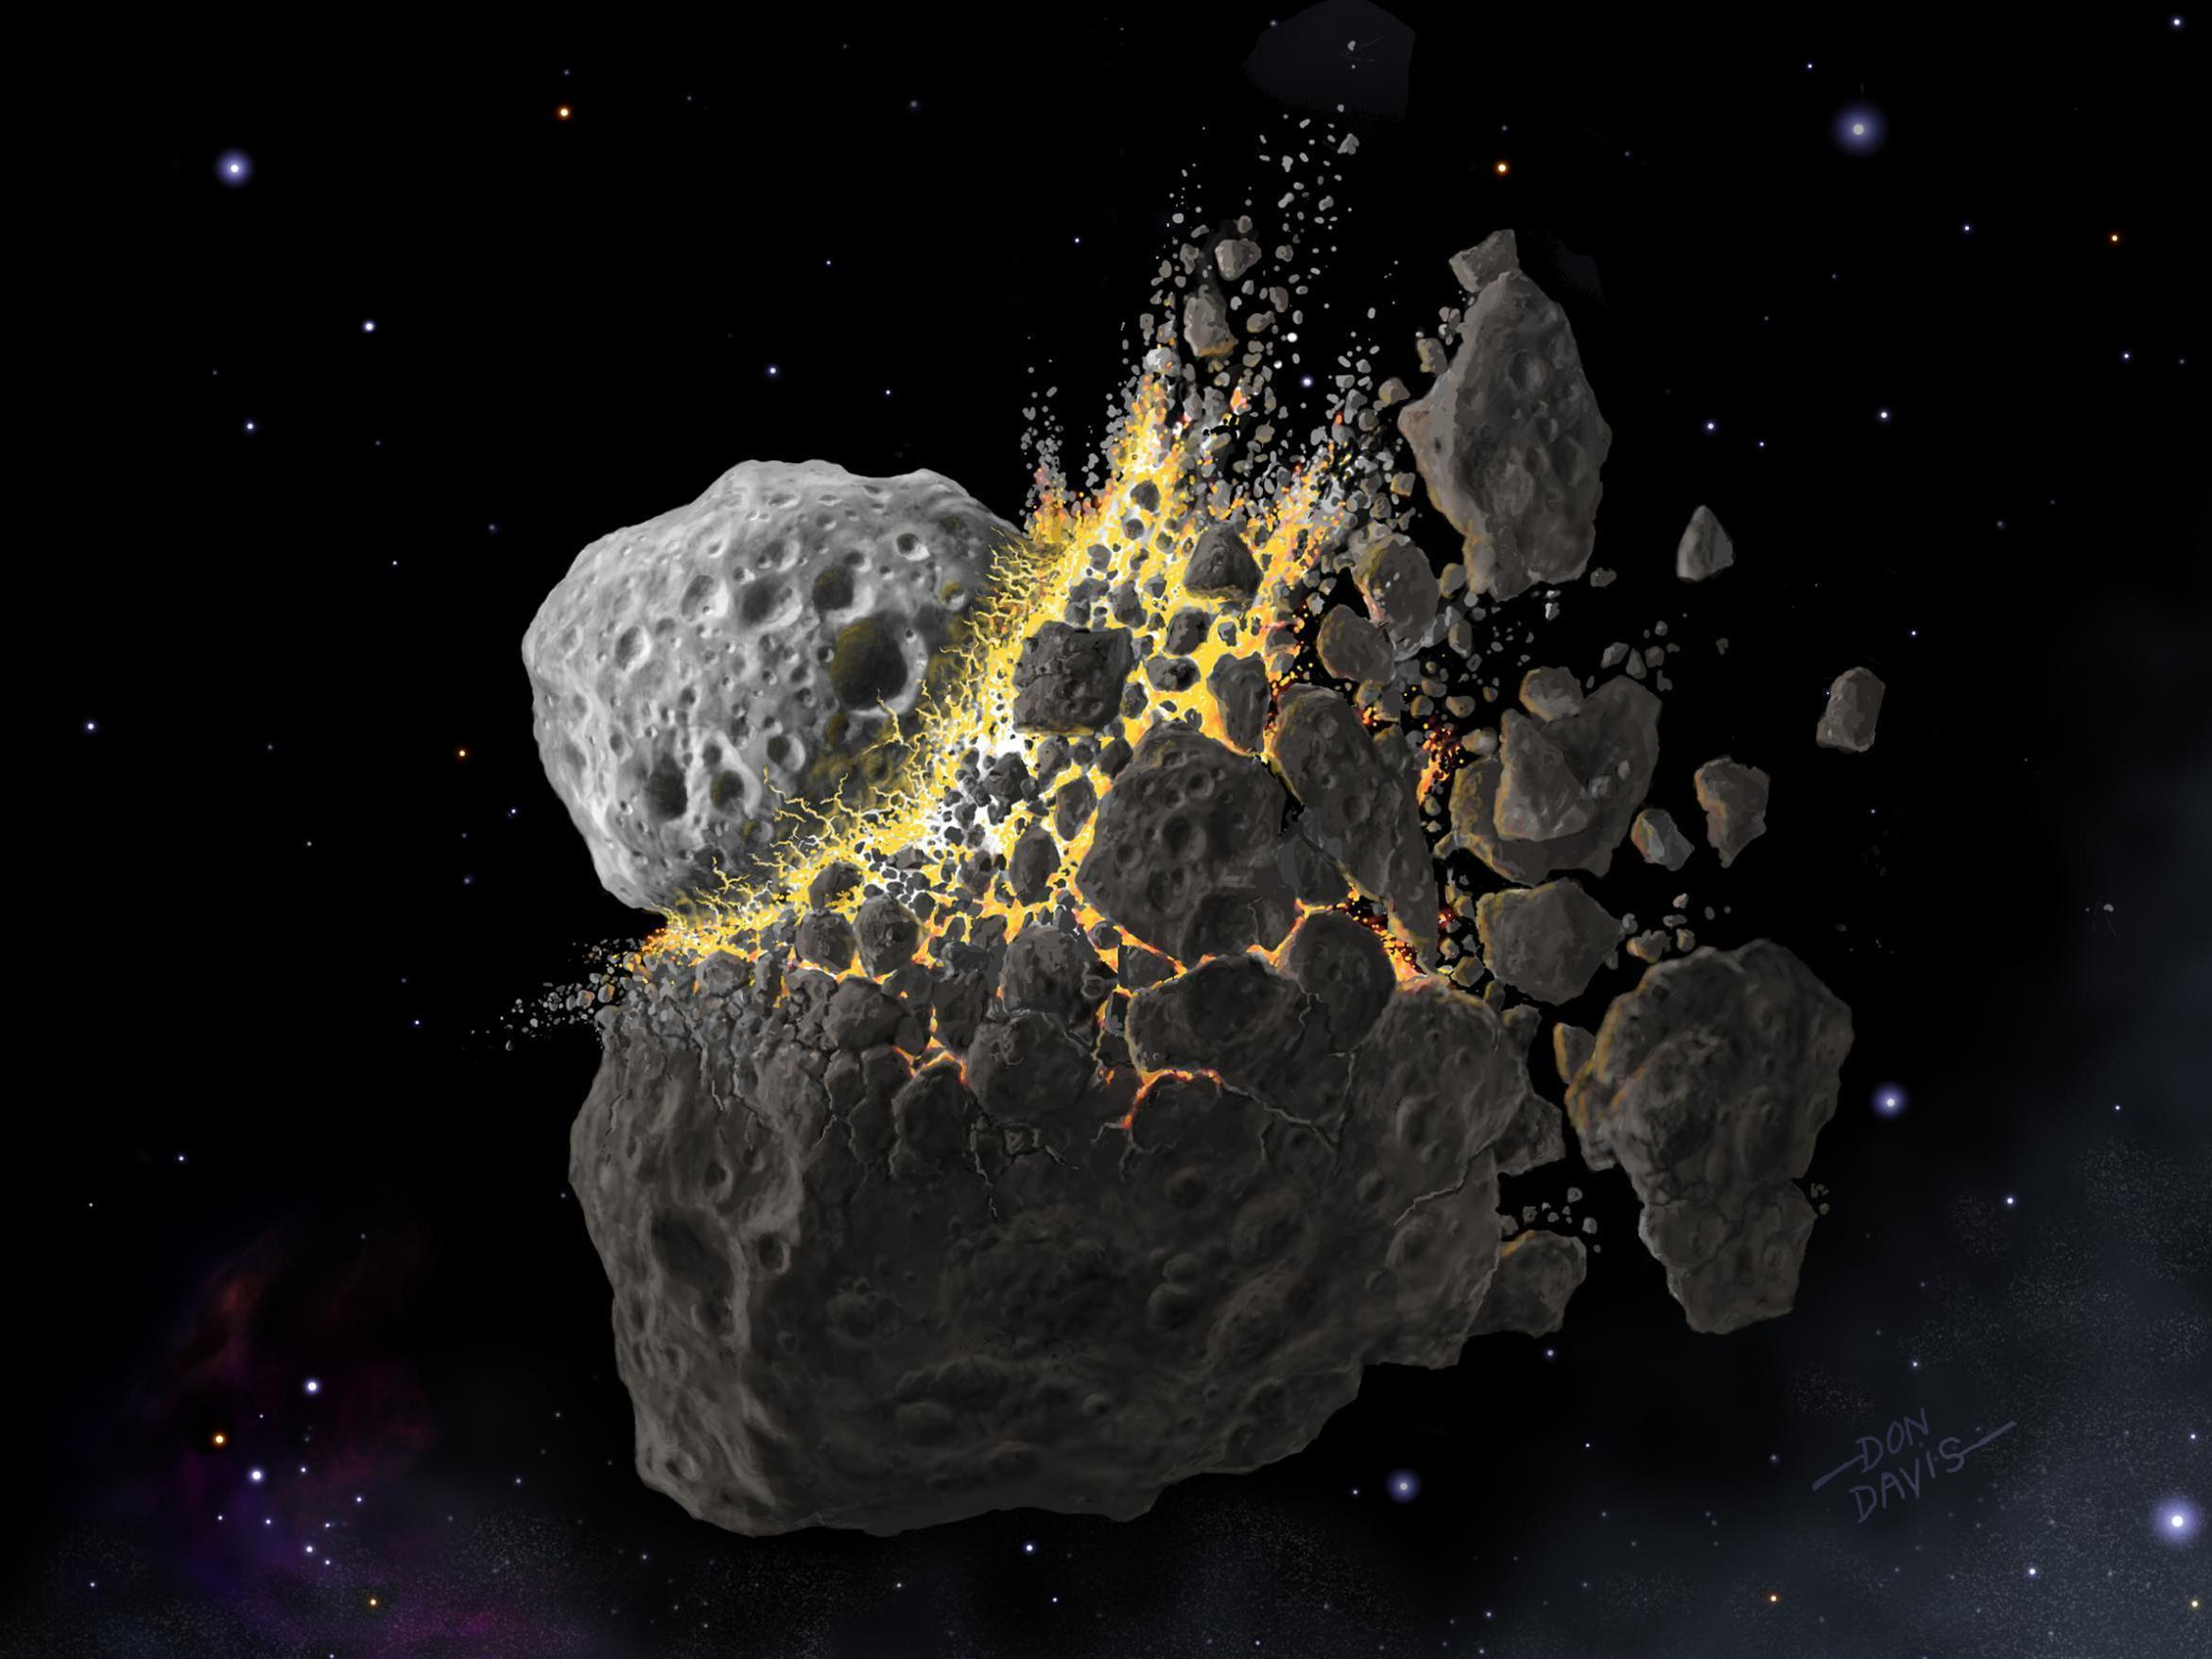 Gigantic asteroid collision 470 million years ago caused Earth to freeze over, scientists say